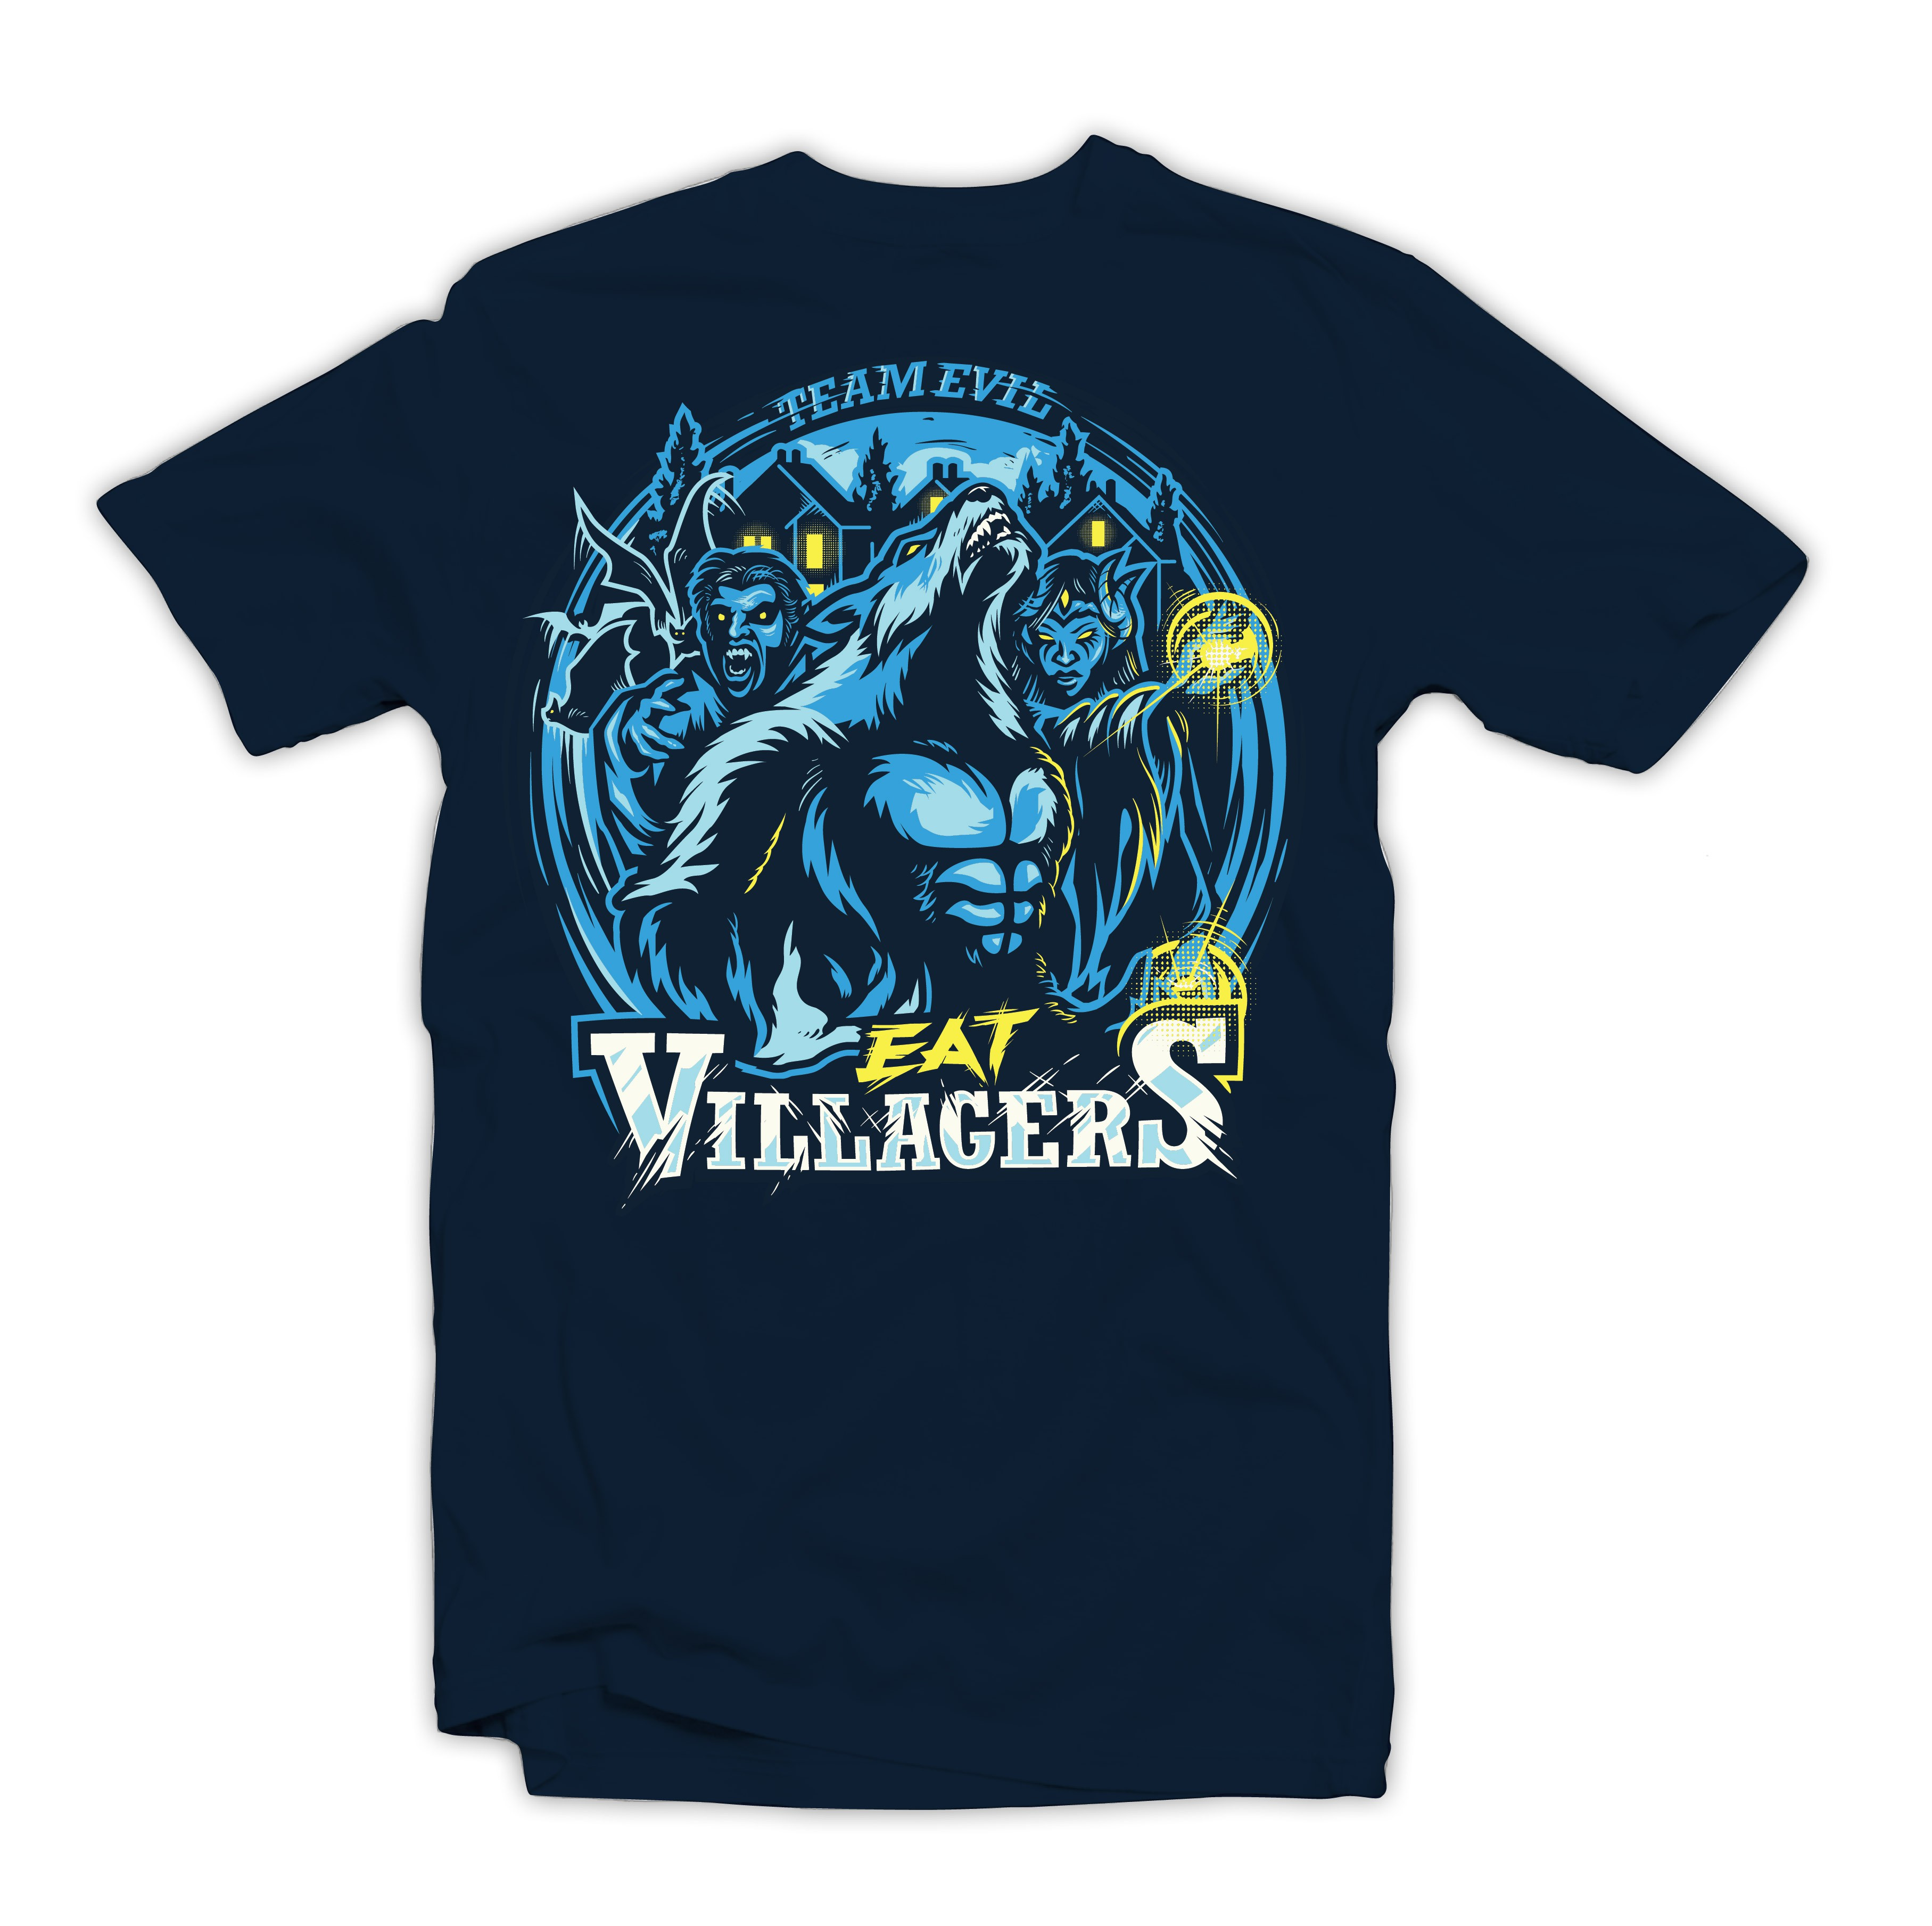 Create a shirt for EatVillagers, a company specializing in the game Werewolf.  AWOOO!